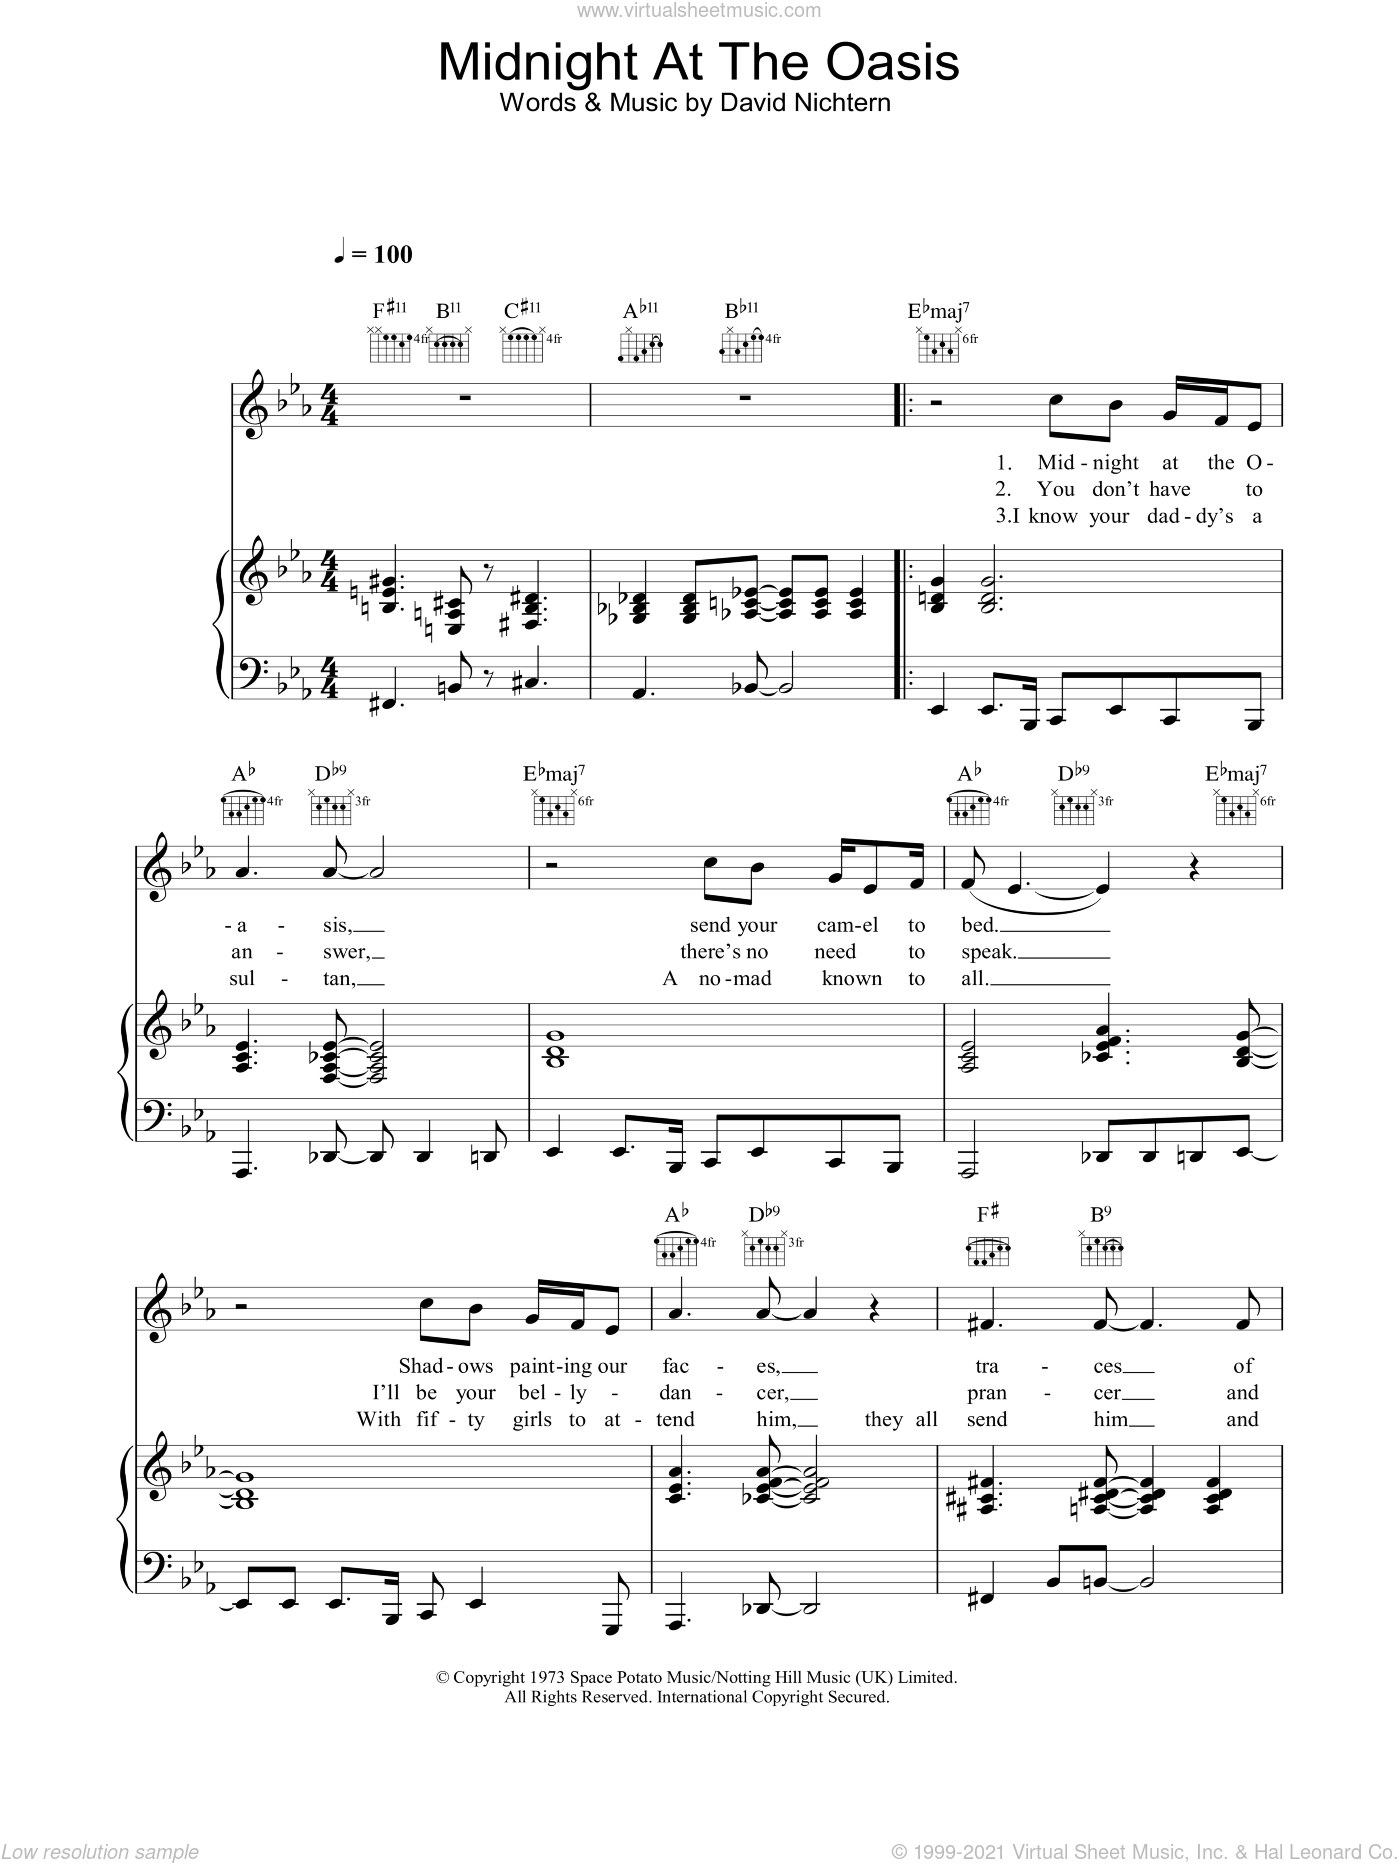 Midnight At The Oasis sheet music for voice, piano or guitar by Maria Muldaur and David Nichtern, intermediate skill level